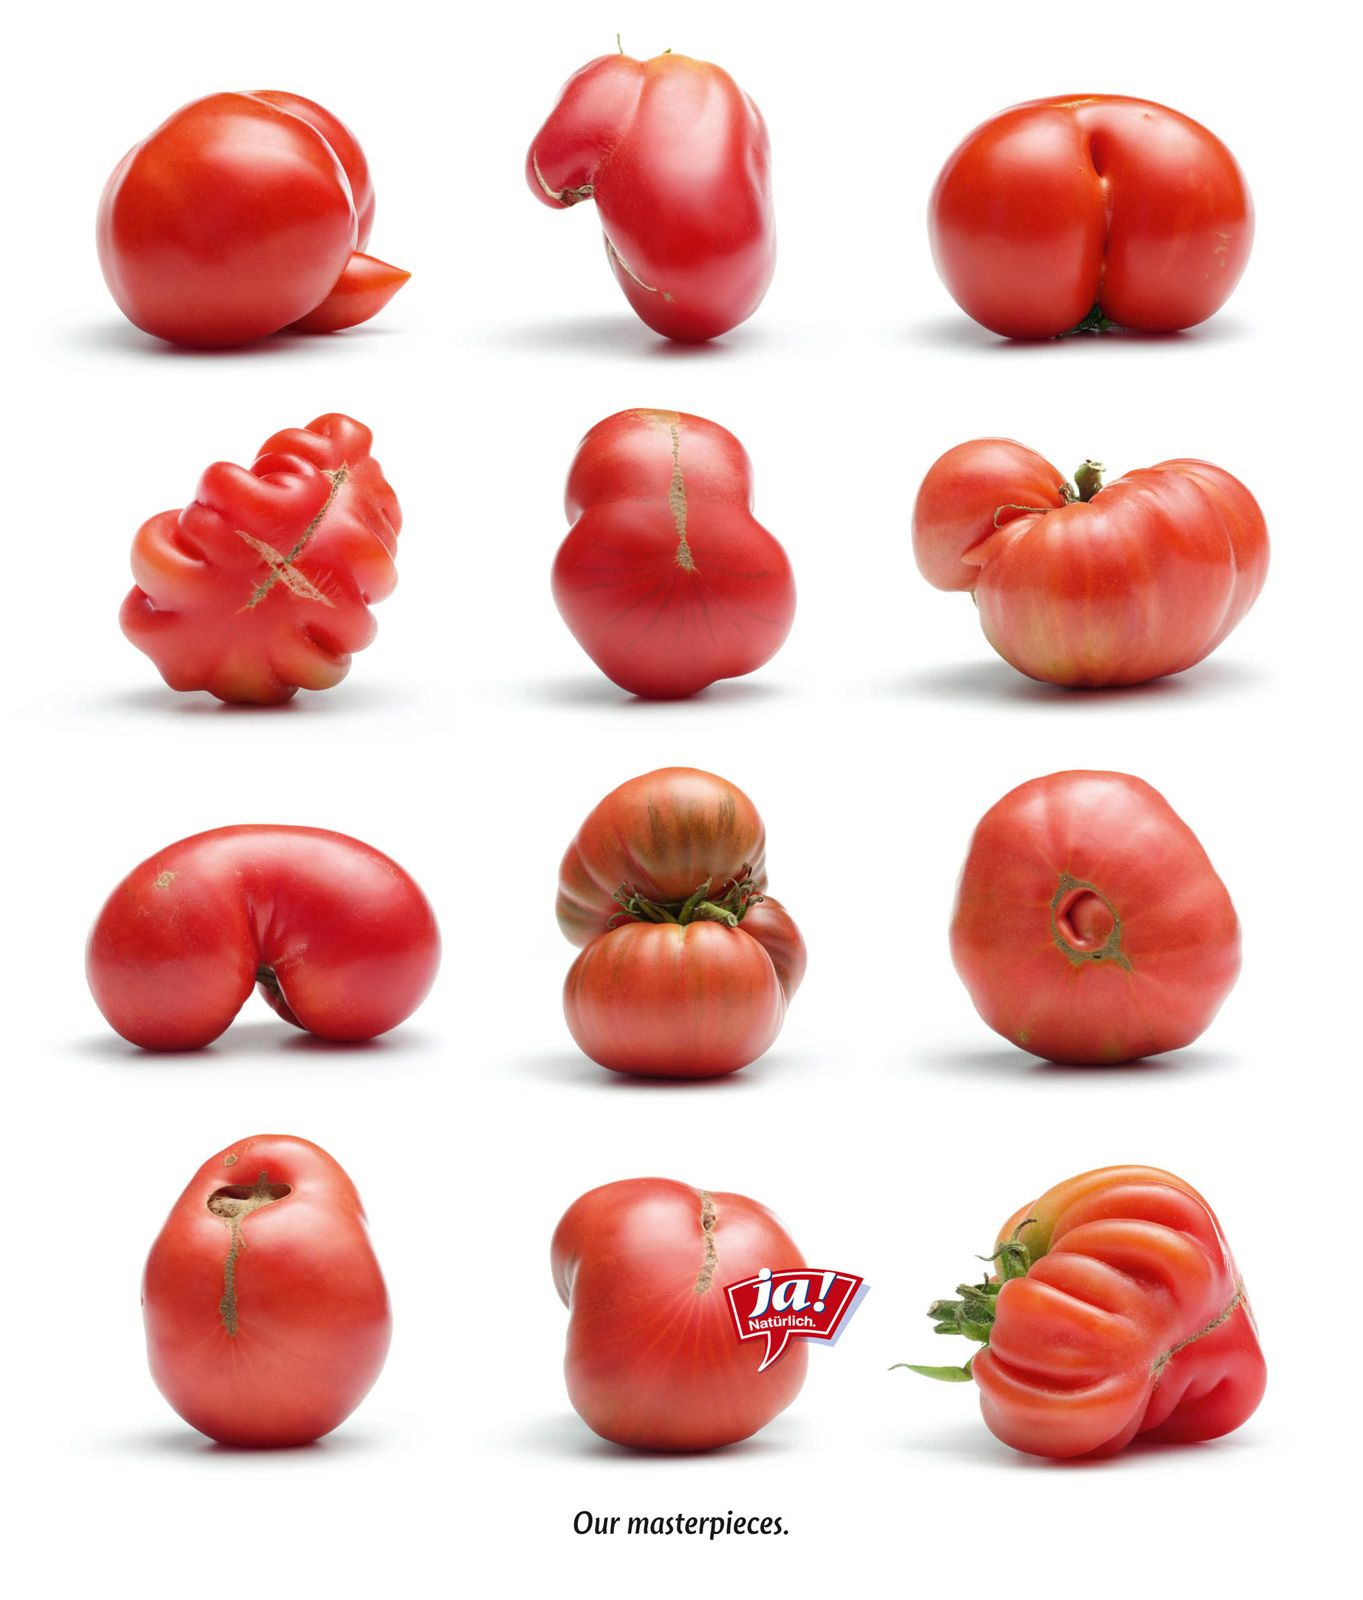 Ugly tomatoes make for a beautiful message semillas - Semillas de frutas y verduras ...